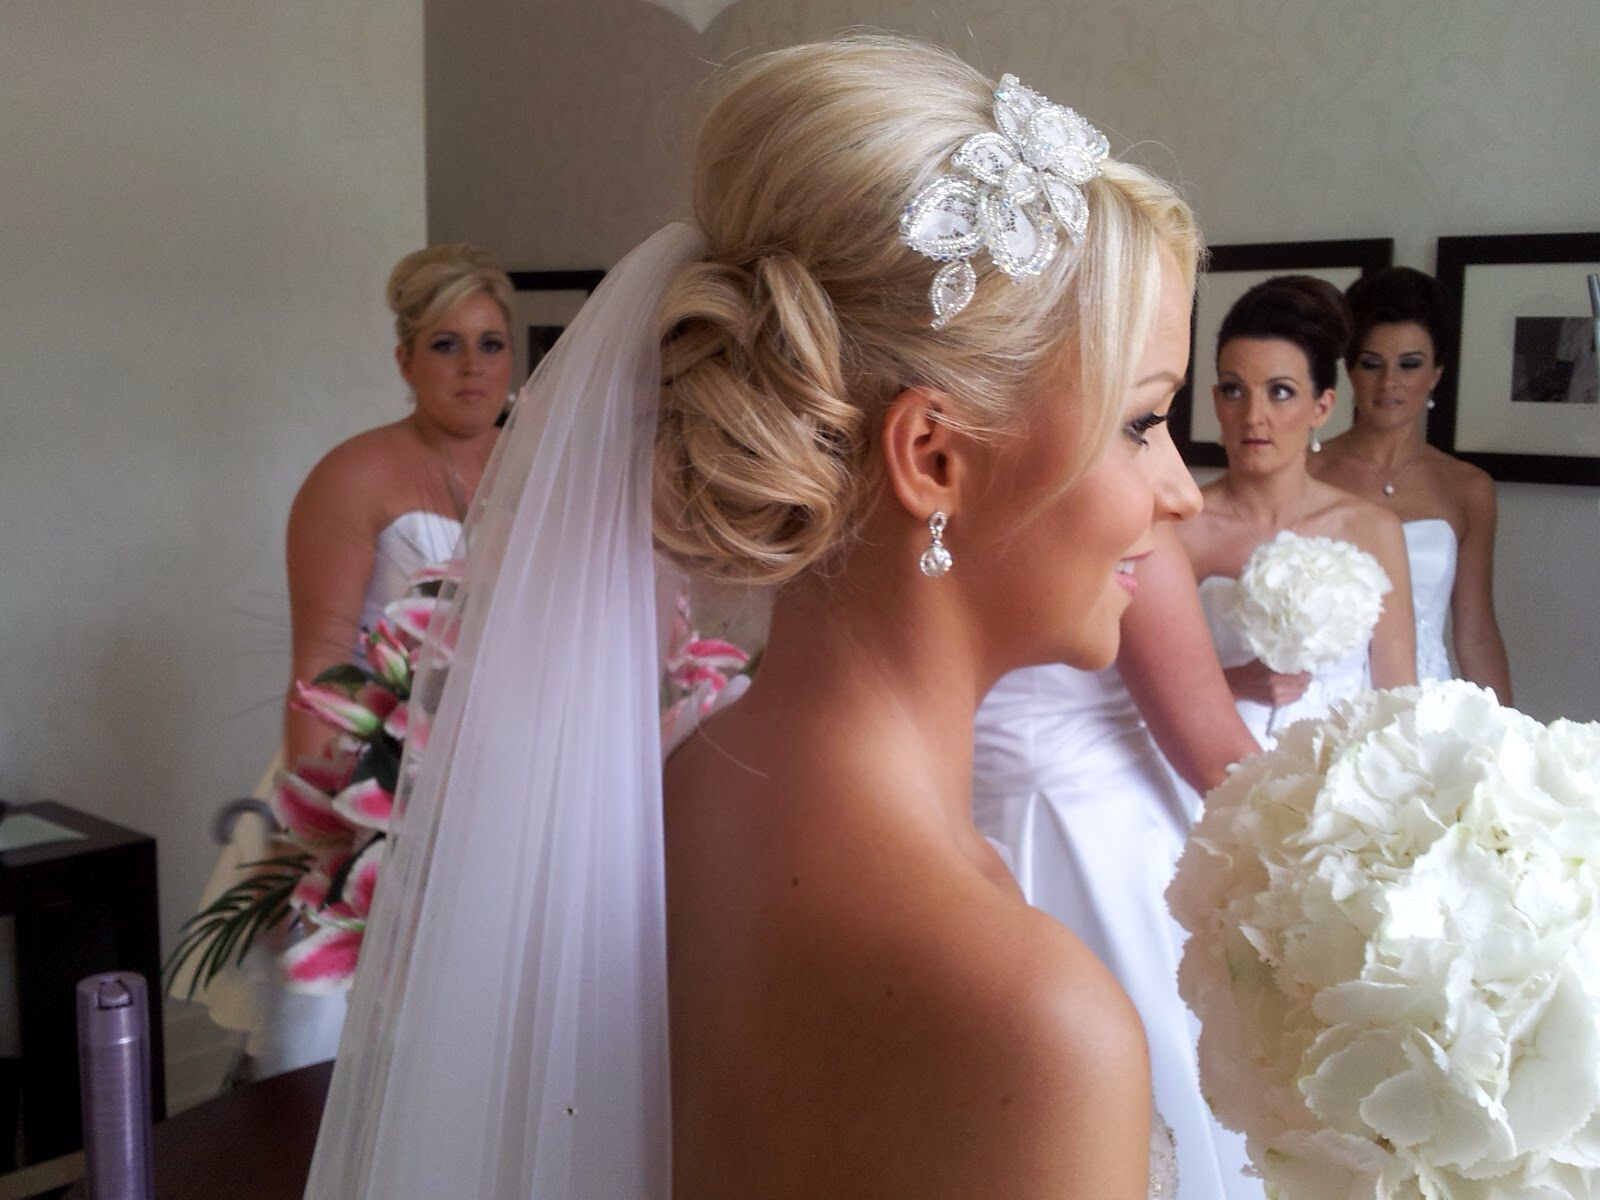 want an updo but with the veil on top  alot seem to be under